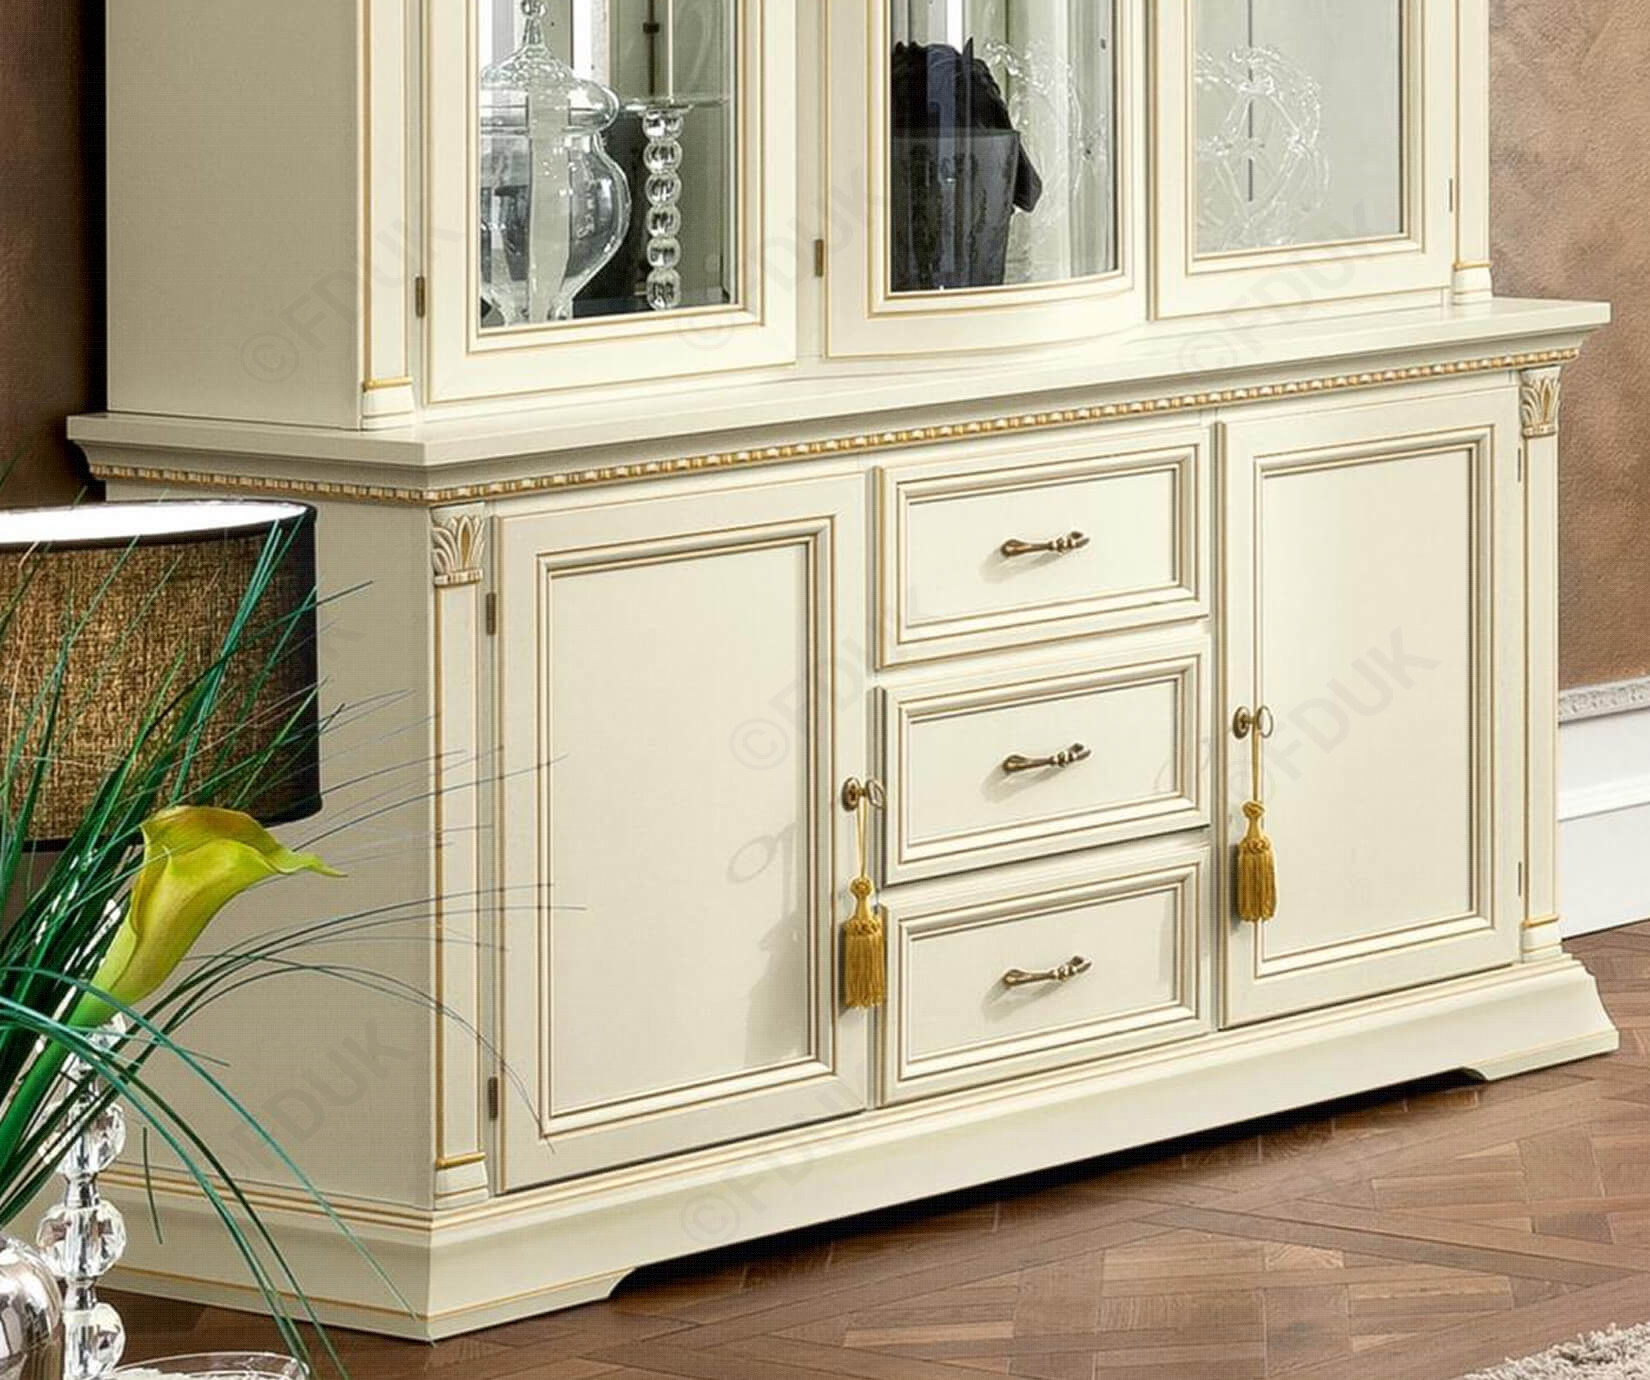 Camel Group Treviso White Ash Finish 2 Door 3 Drawer Buffet inside 3-Drawer Storage Buffets (Image 7 of 30)